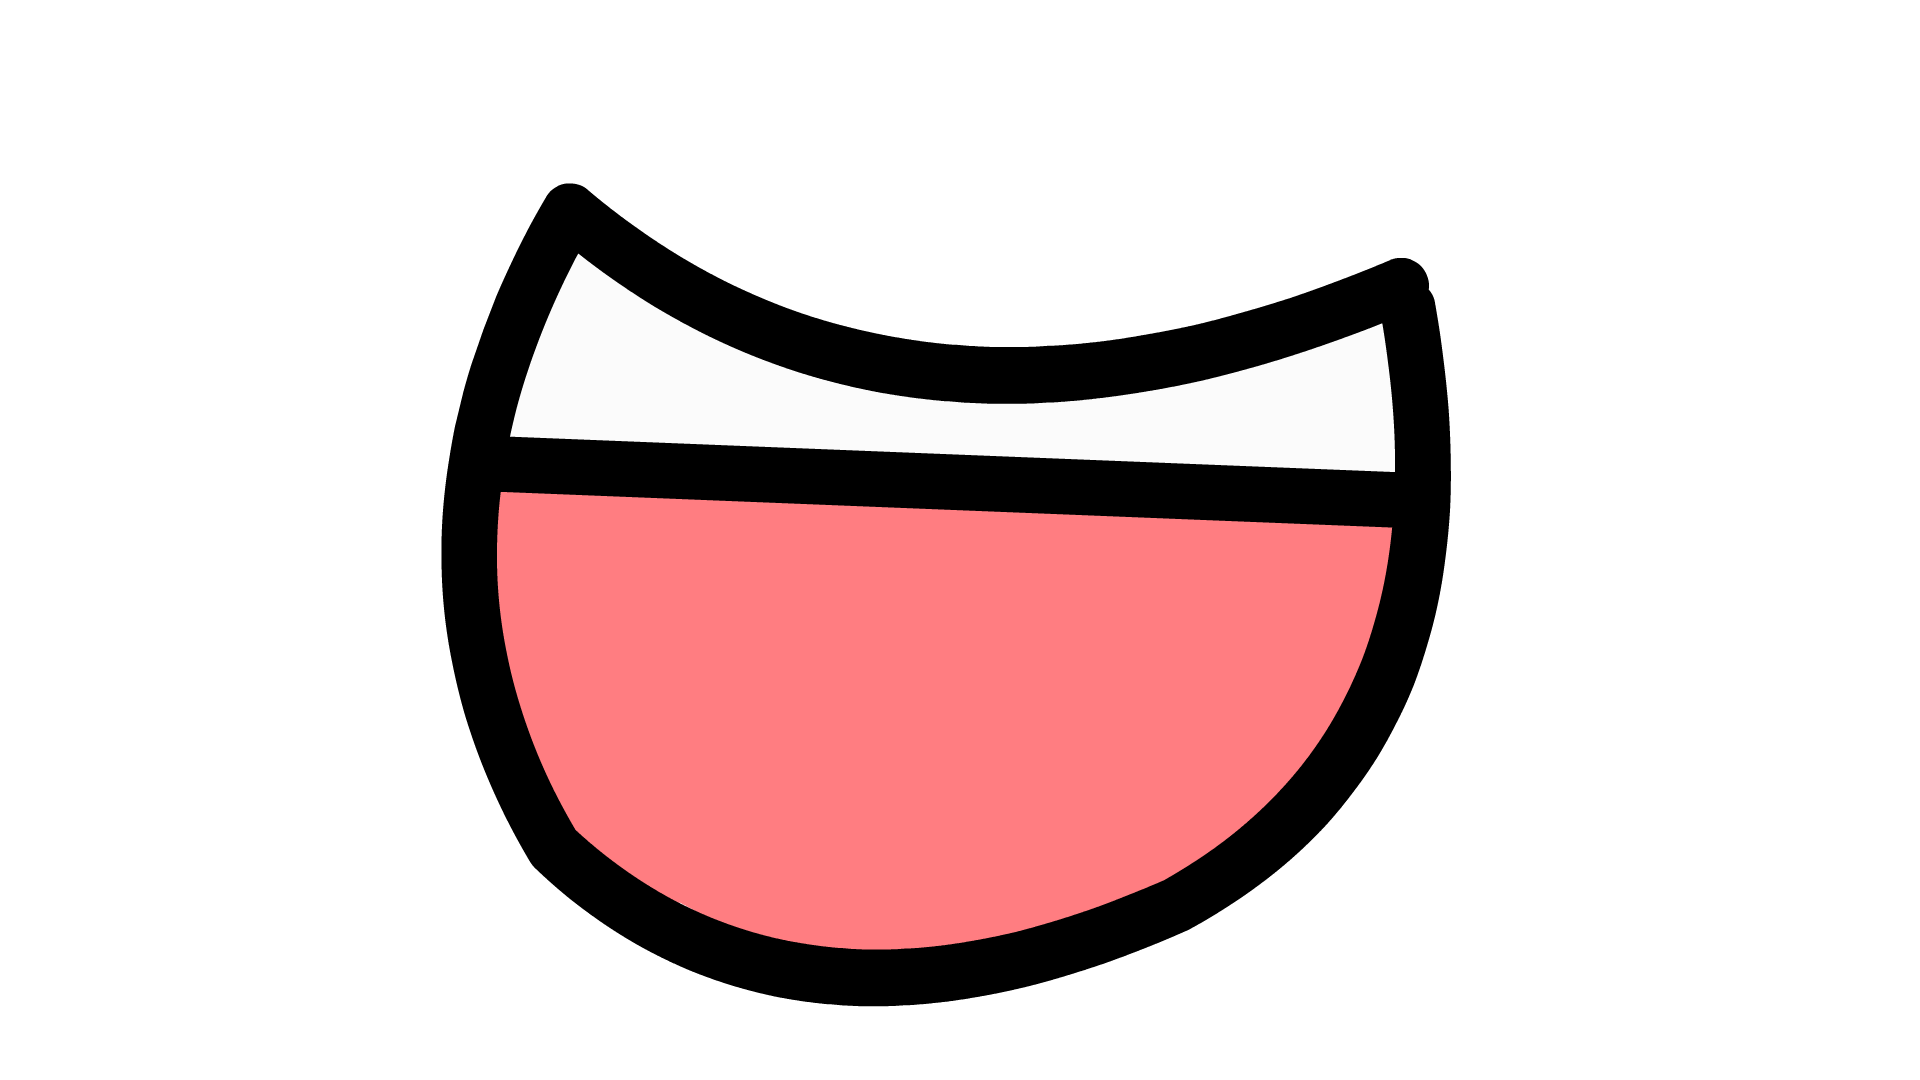 Mouth Smile PNG Image - PurePNG | Free transparent CC0 PNG Image Library